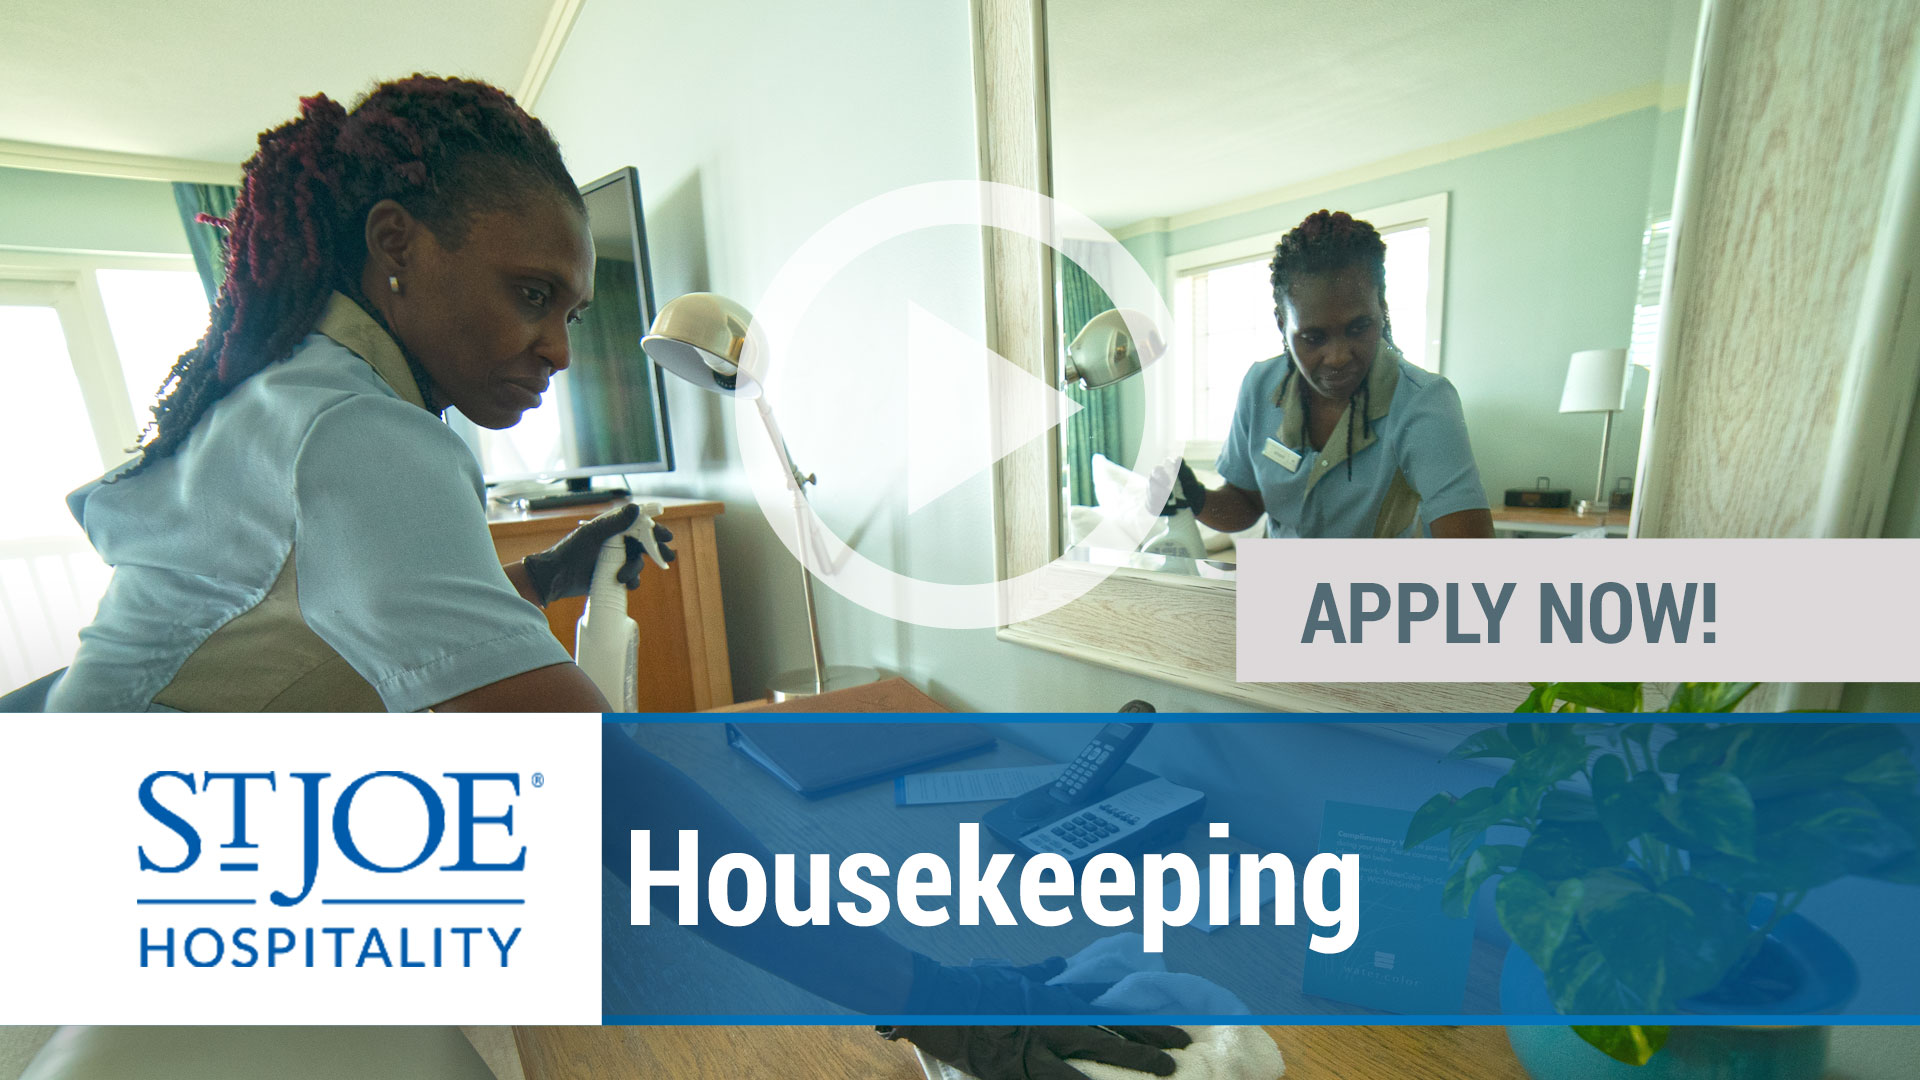 Watch our careers video for available job opening Housekeeping in Varies